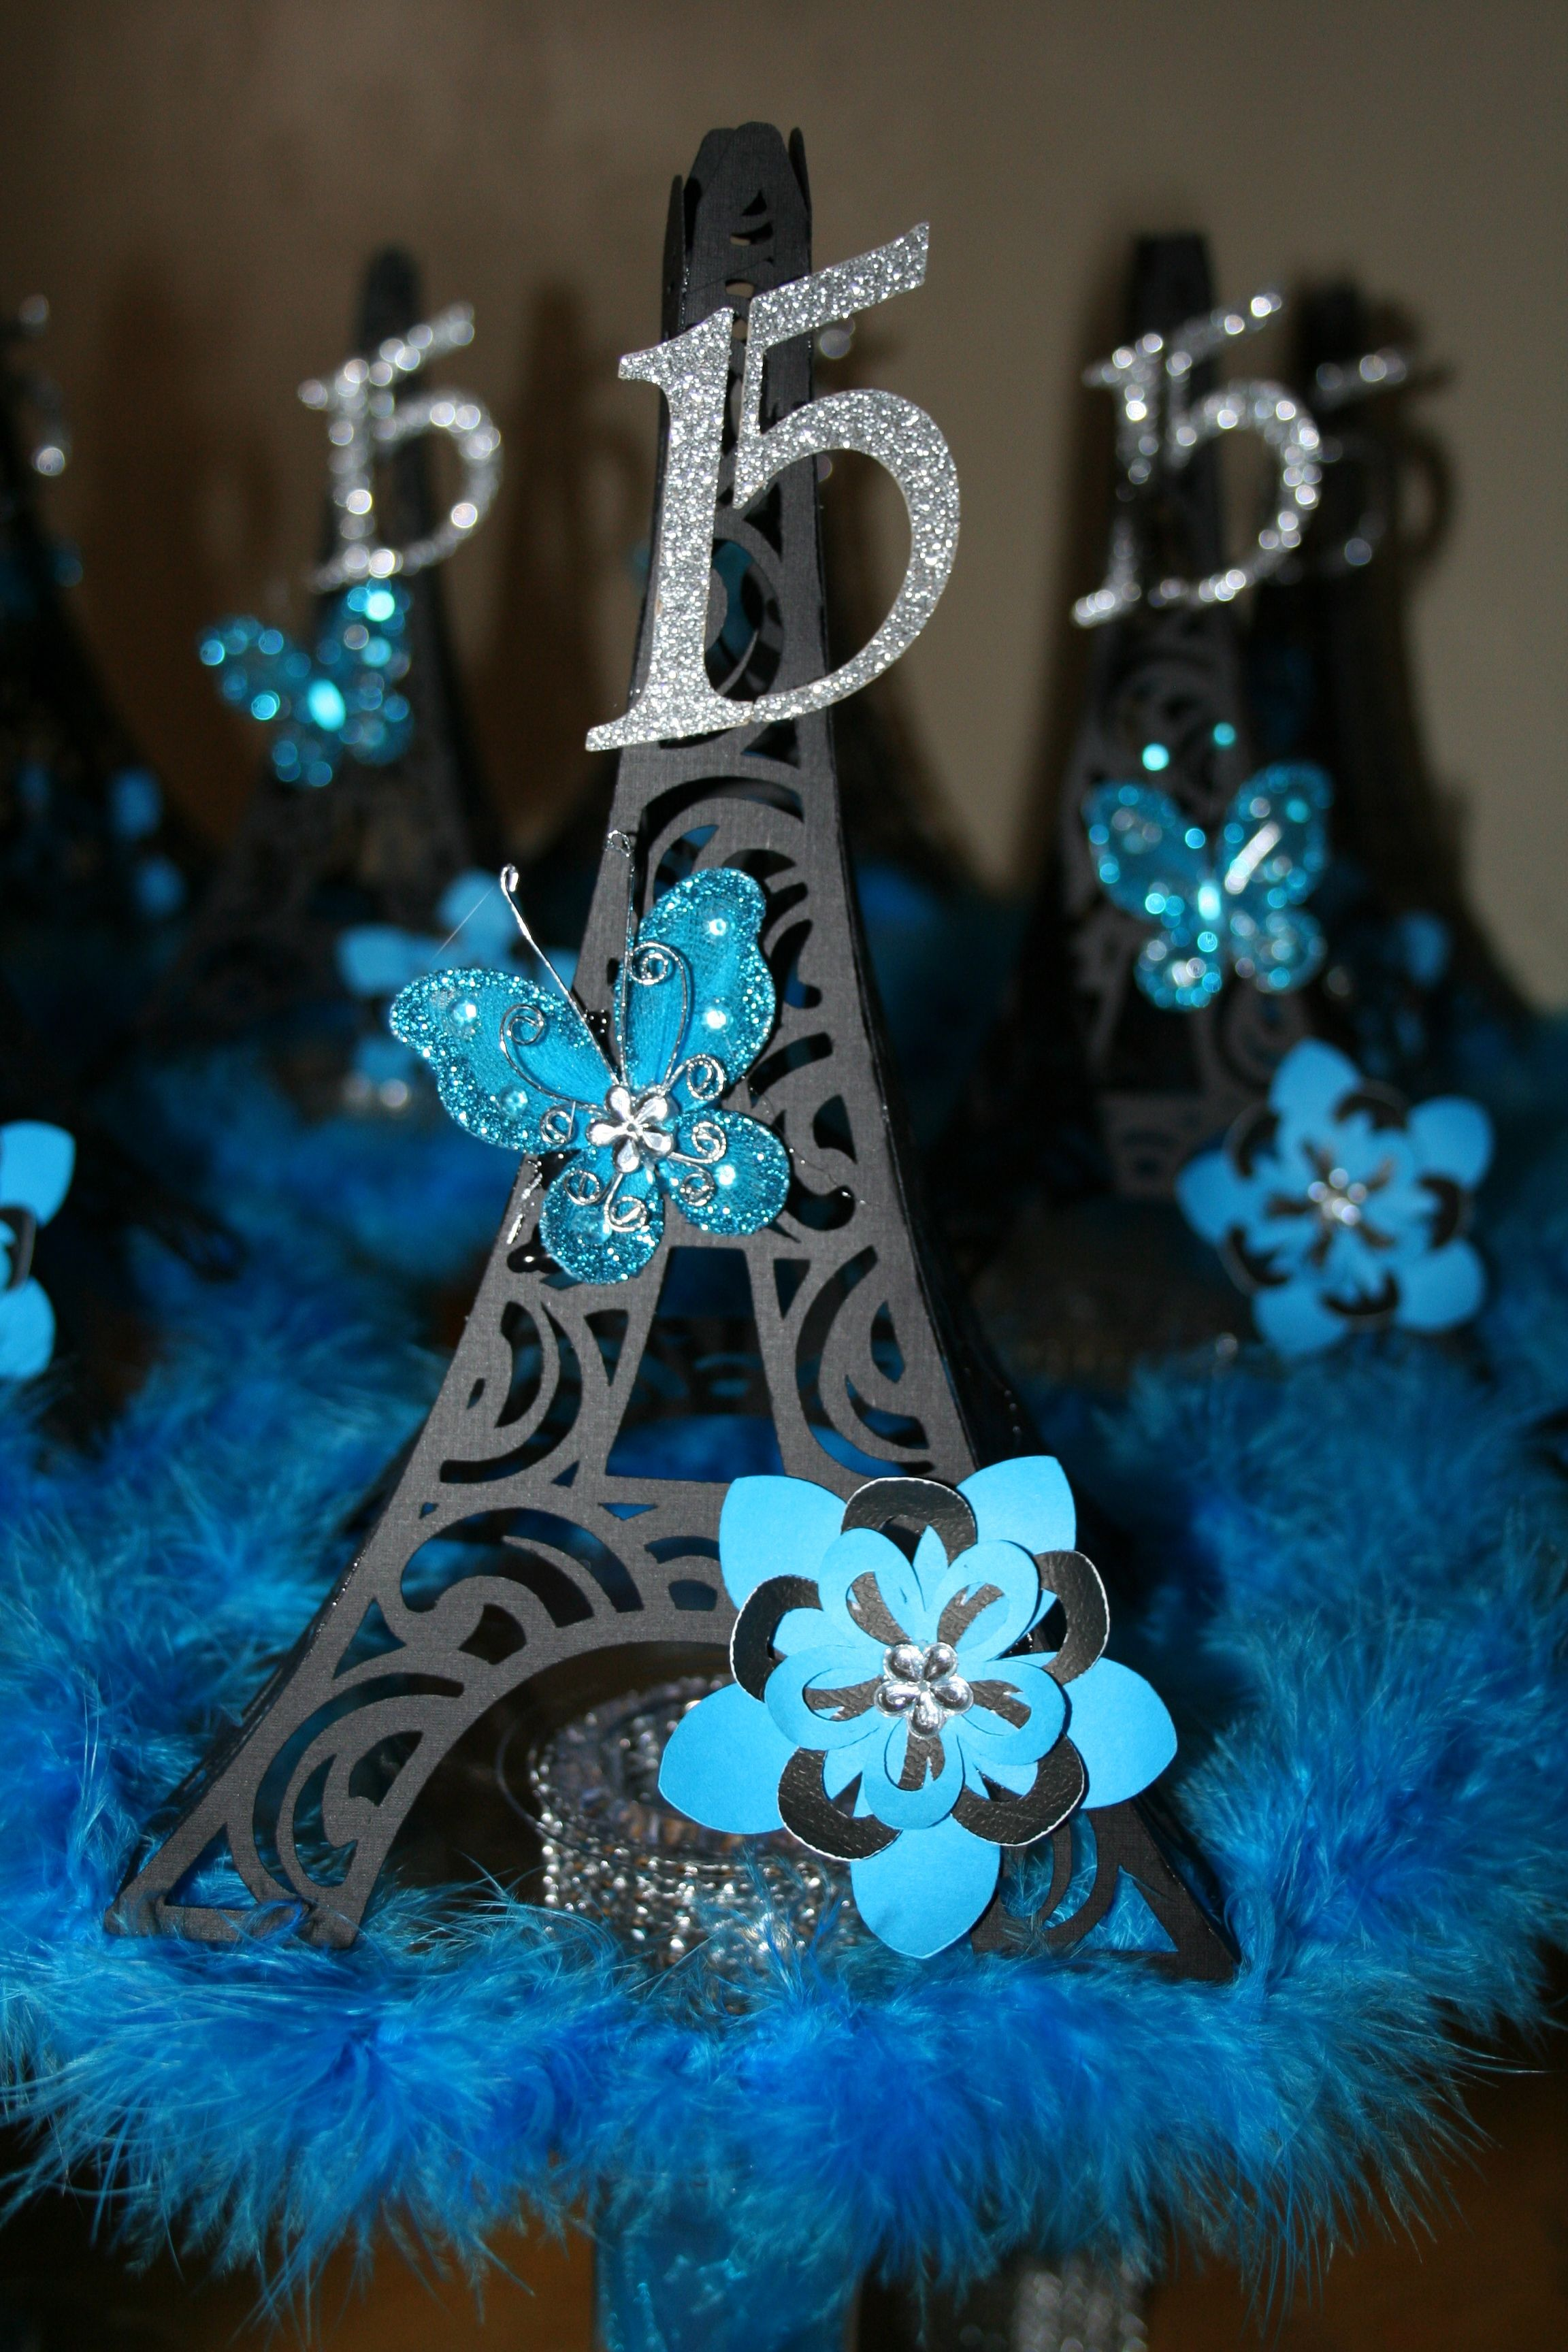 paris quincenera centerpieces i just finished made with my own hands pinterest. Black Bedroom Furniture Sets. Home Design Ideas